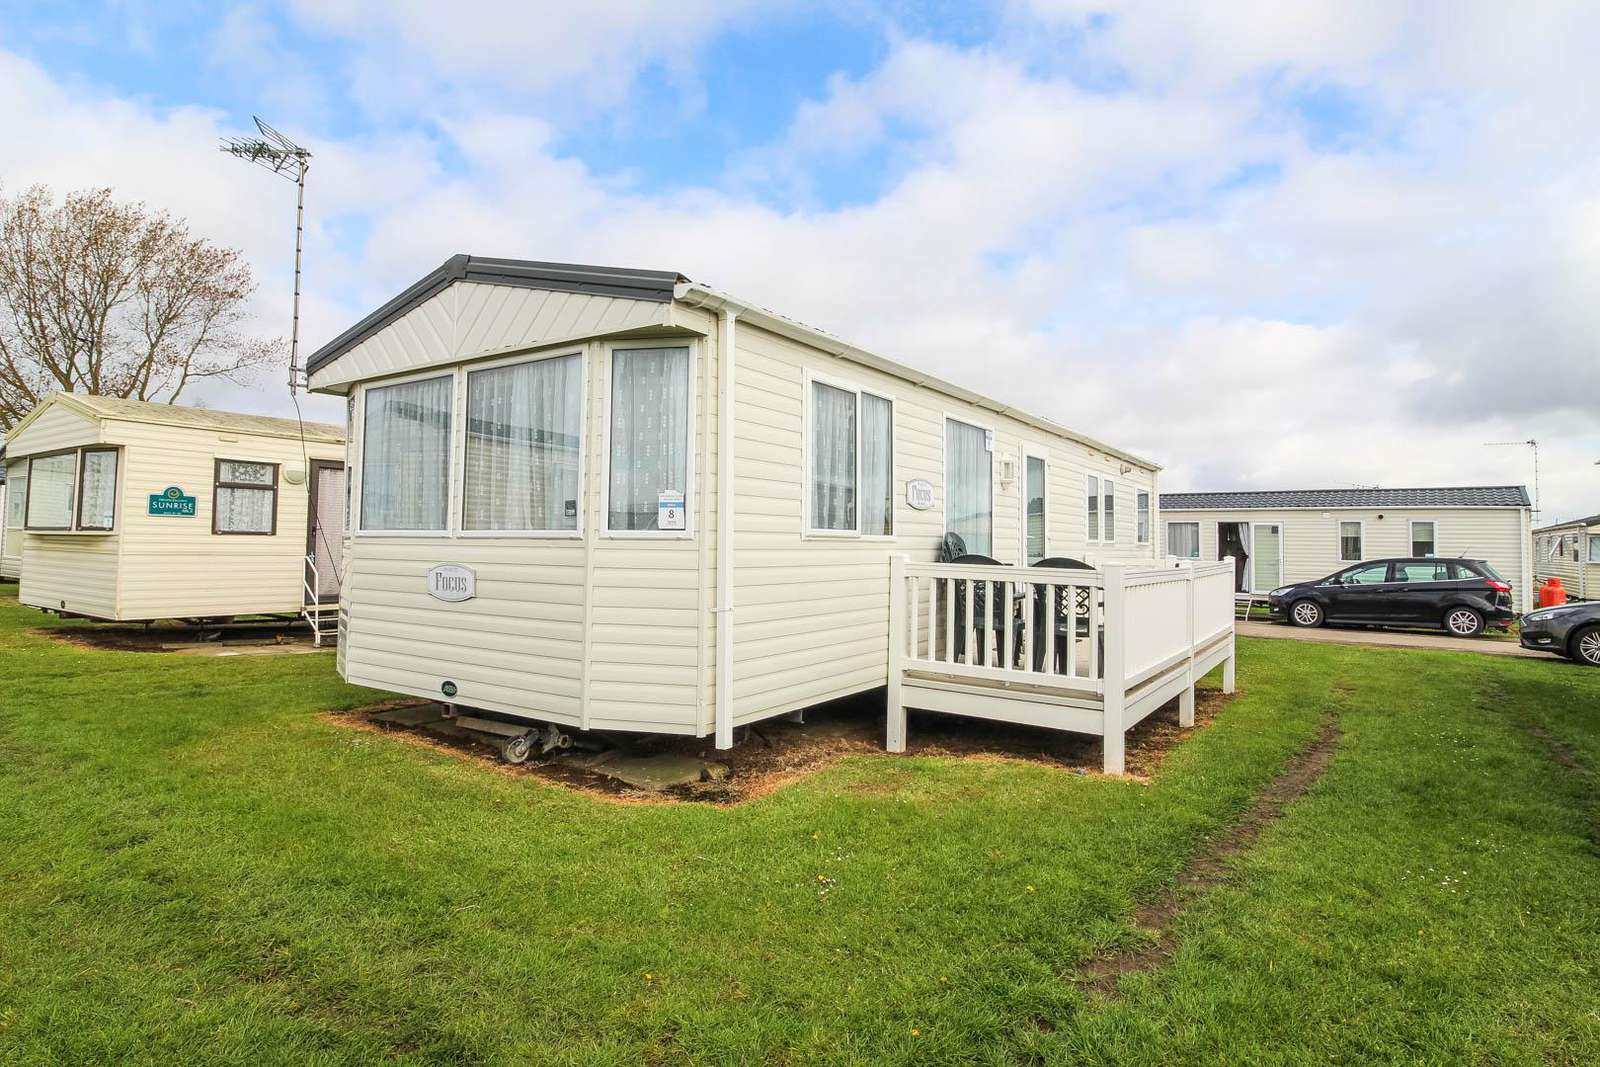 50008B – Bittern area, 3 bed, 8 berth caravan with decking. Ruby rated. - property